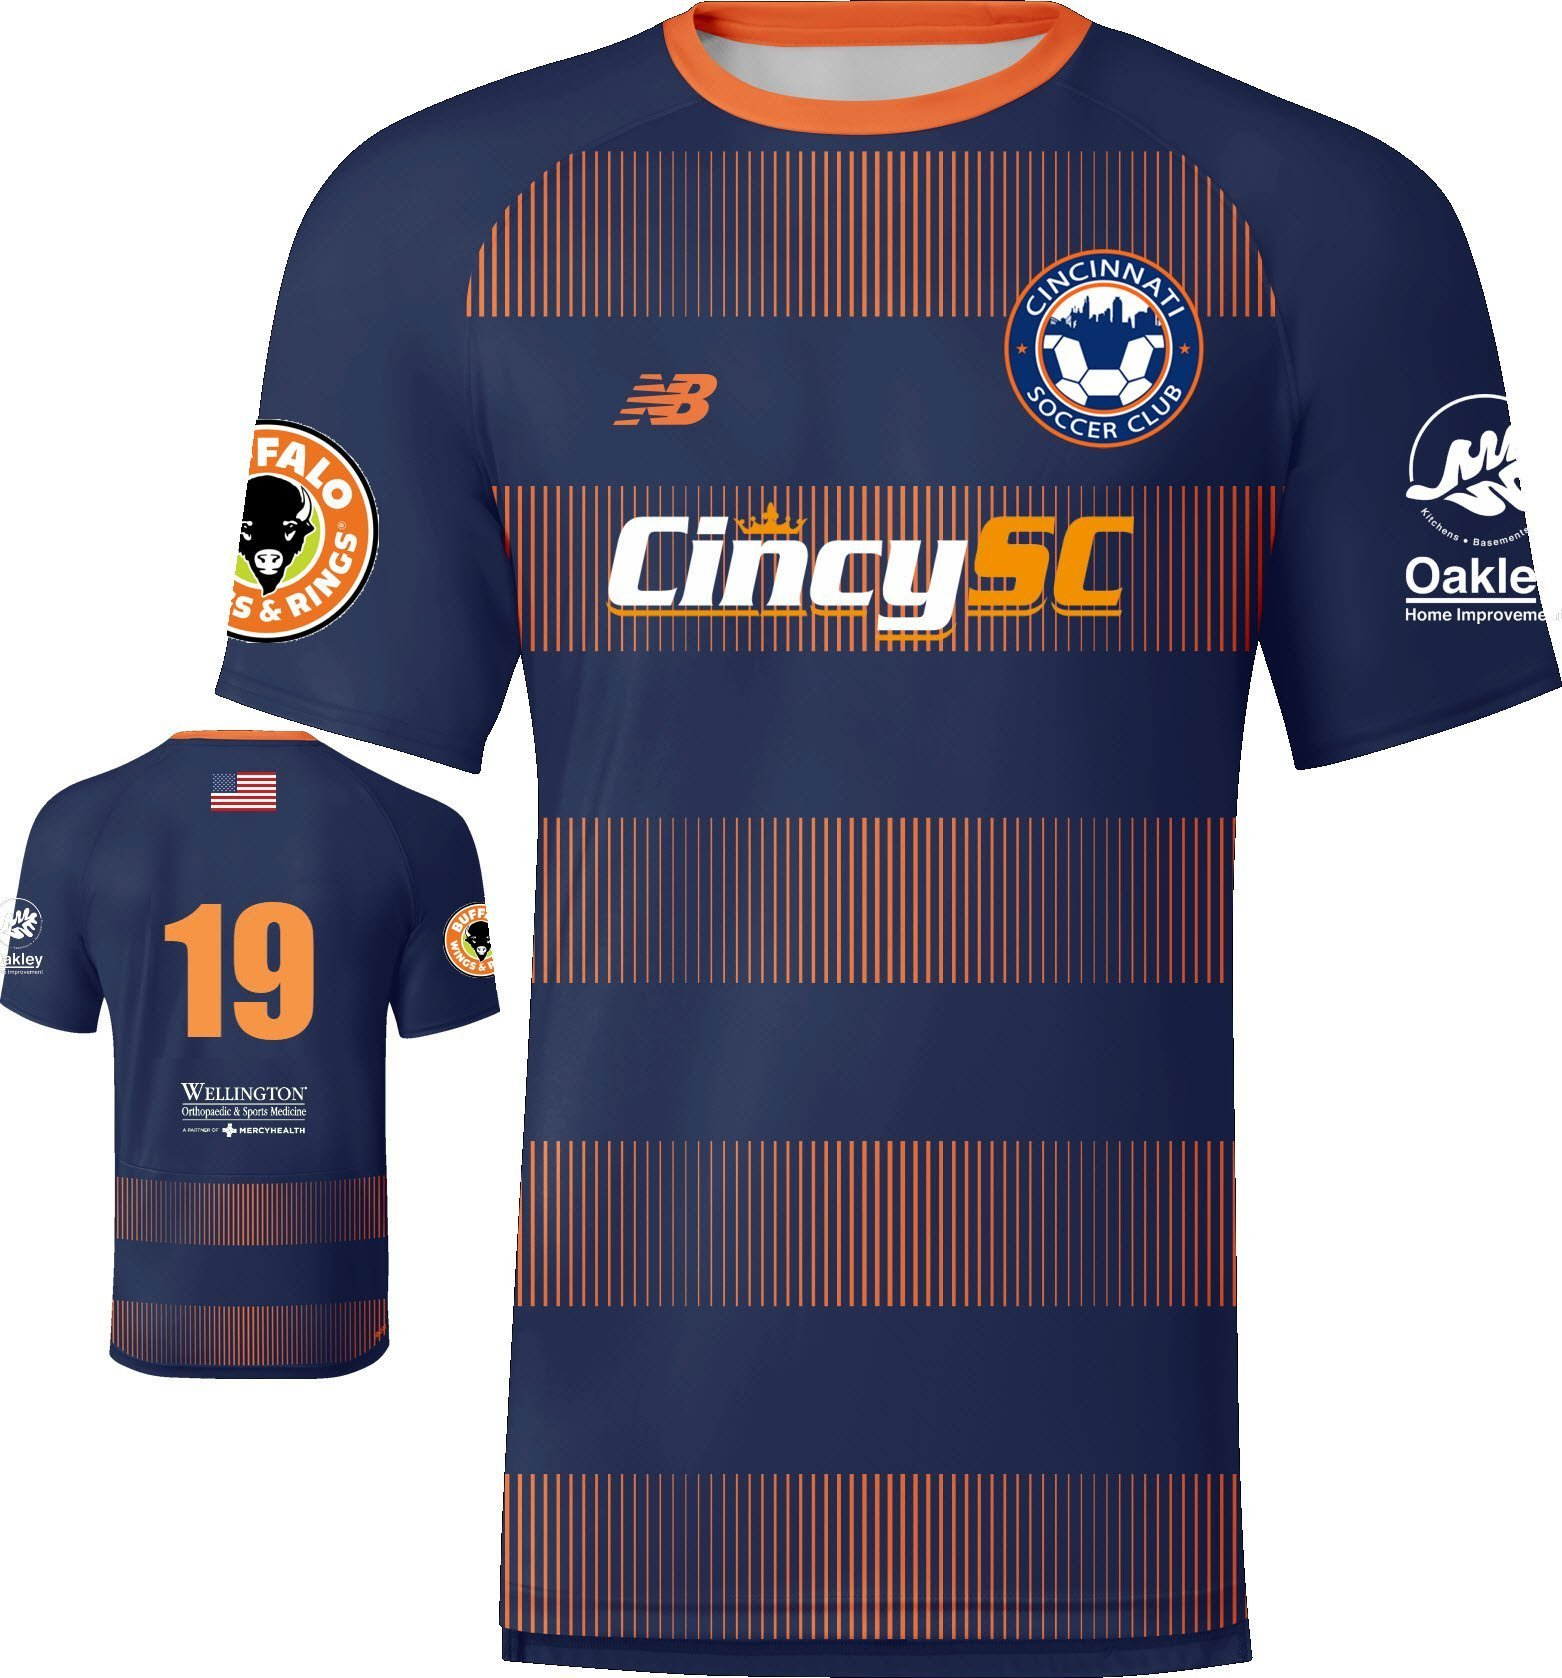 Cincy SC 2019-21 Navy Jersey with Buffalo Wings & Rings, Oakley Home Improvement, and Wellington Orthopedic sponsors.